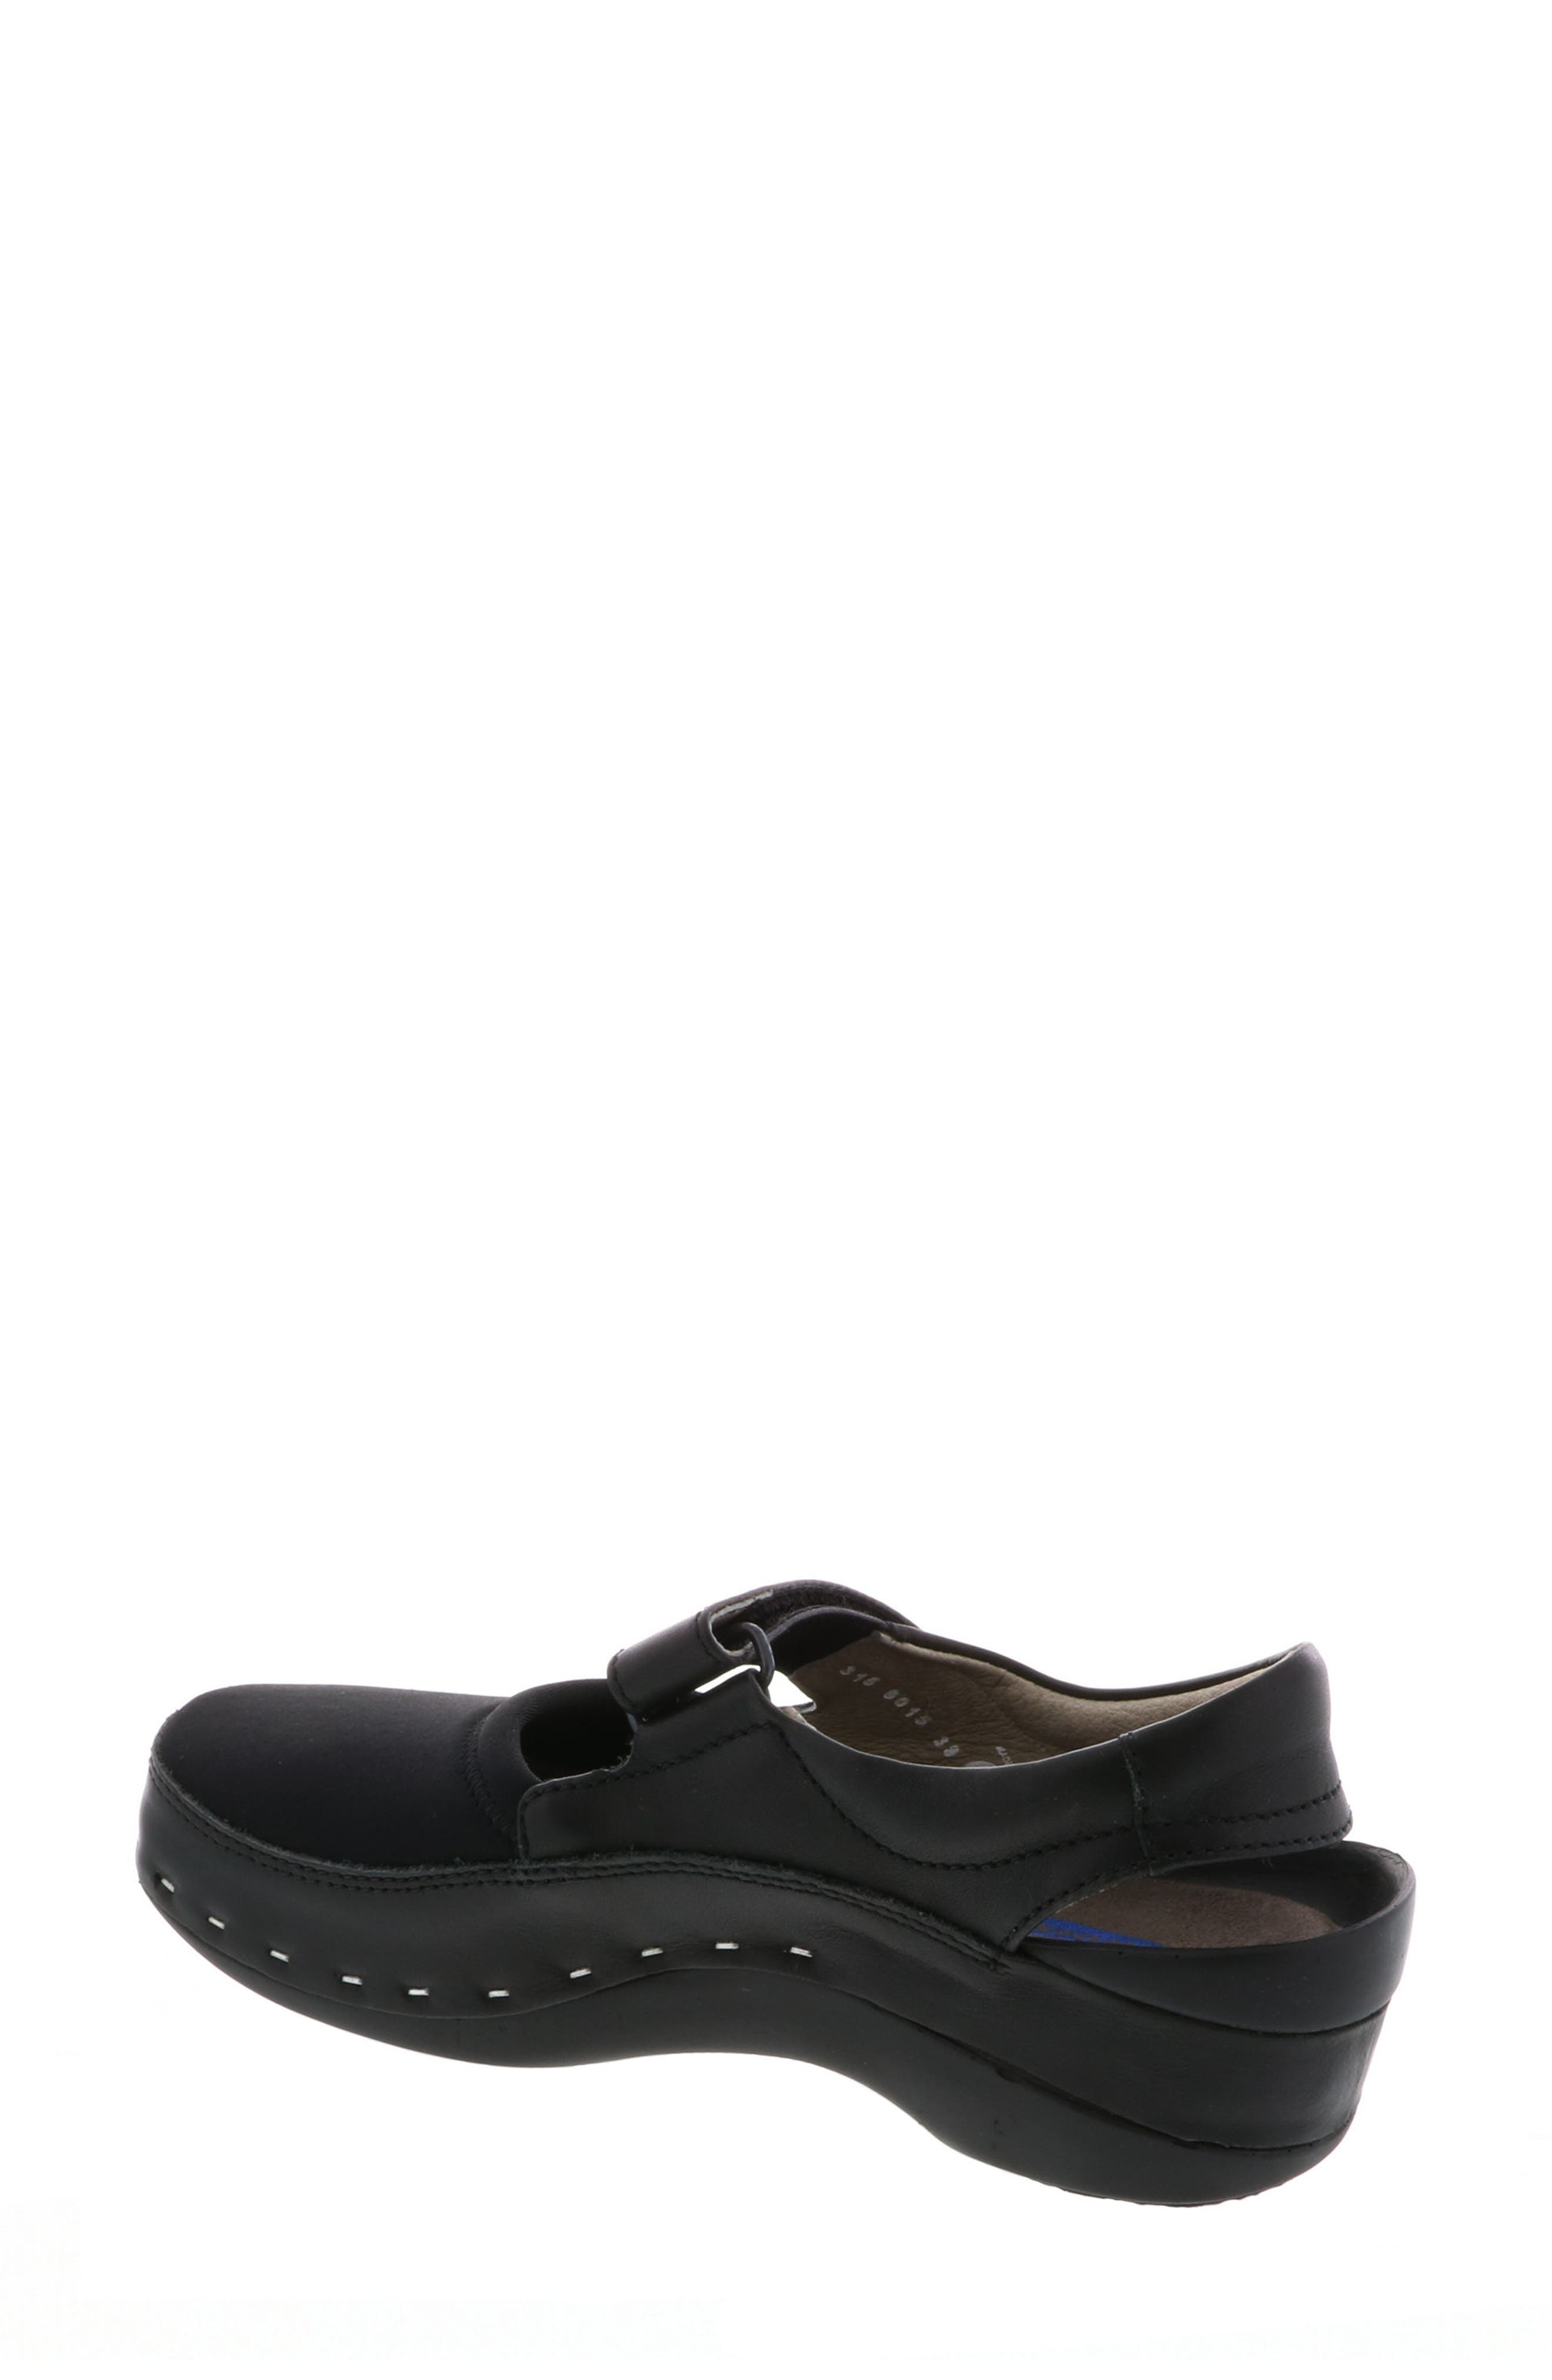 WOLKY,                             Ankle Strap Clog,                             Alternate thumbnail 2, color,                             BLACK LEATHER